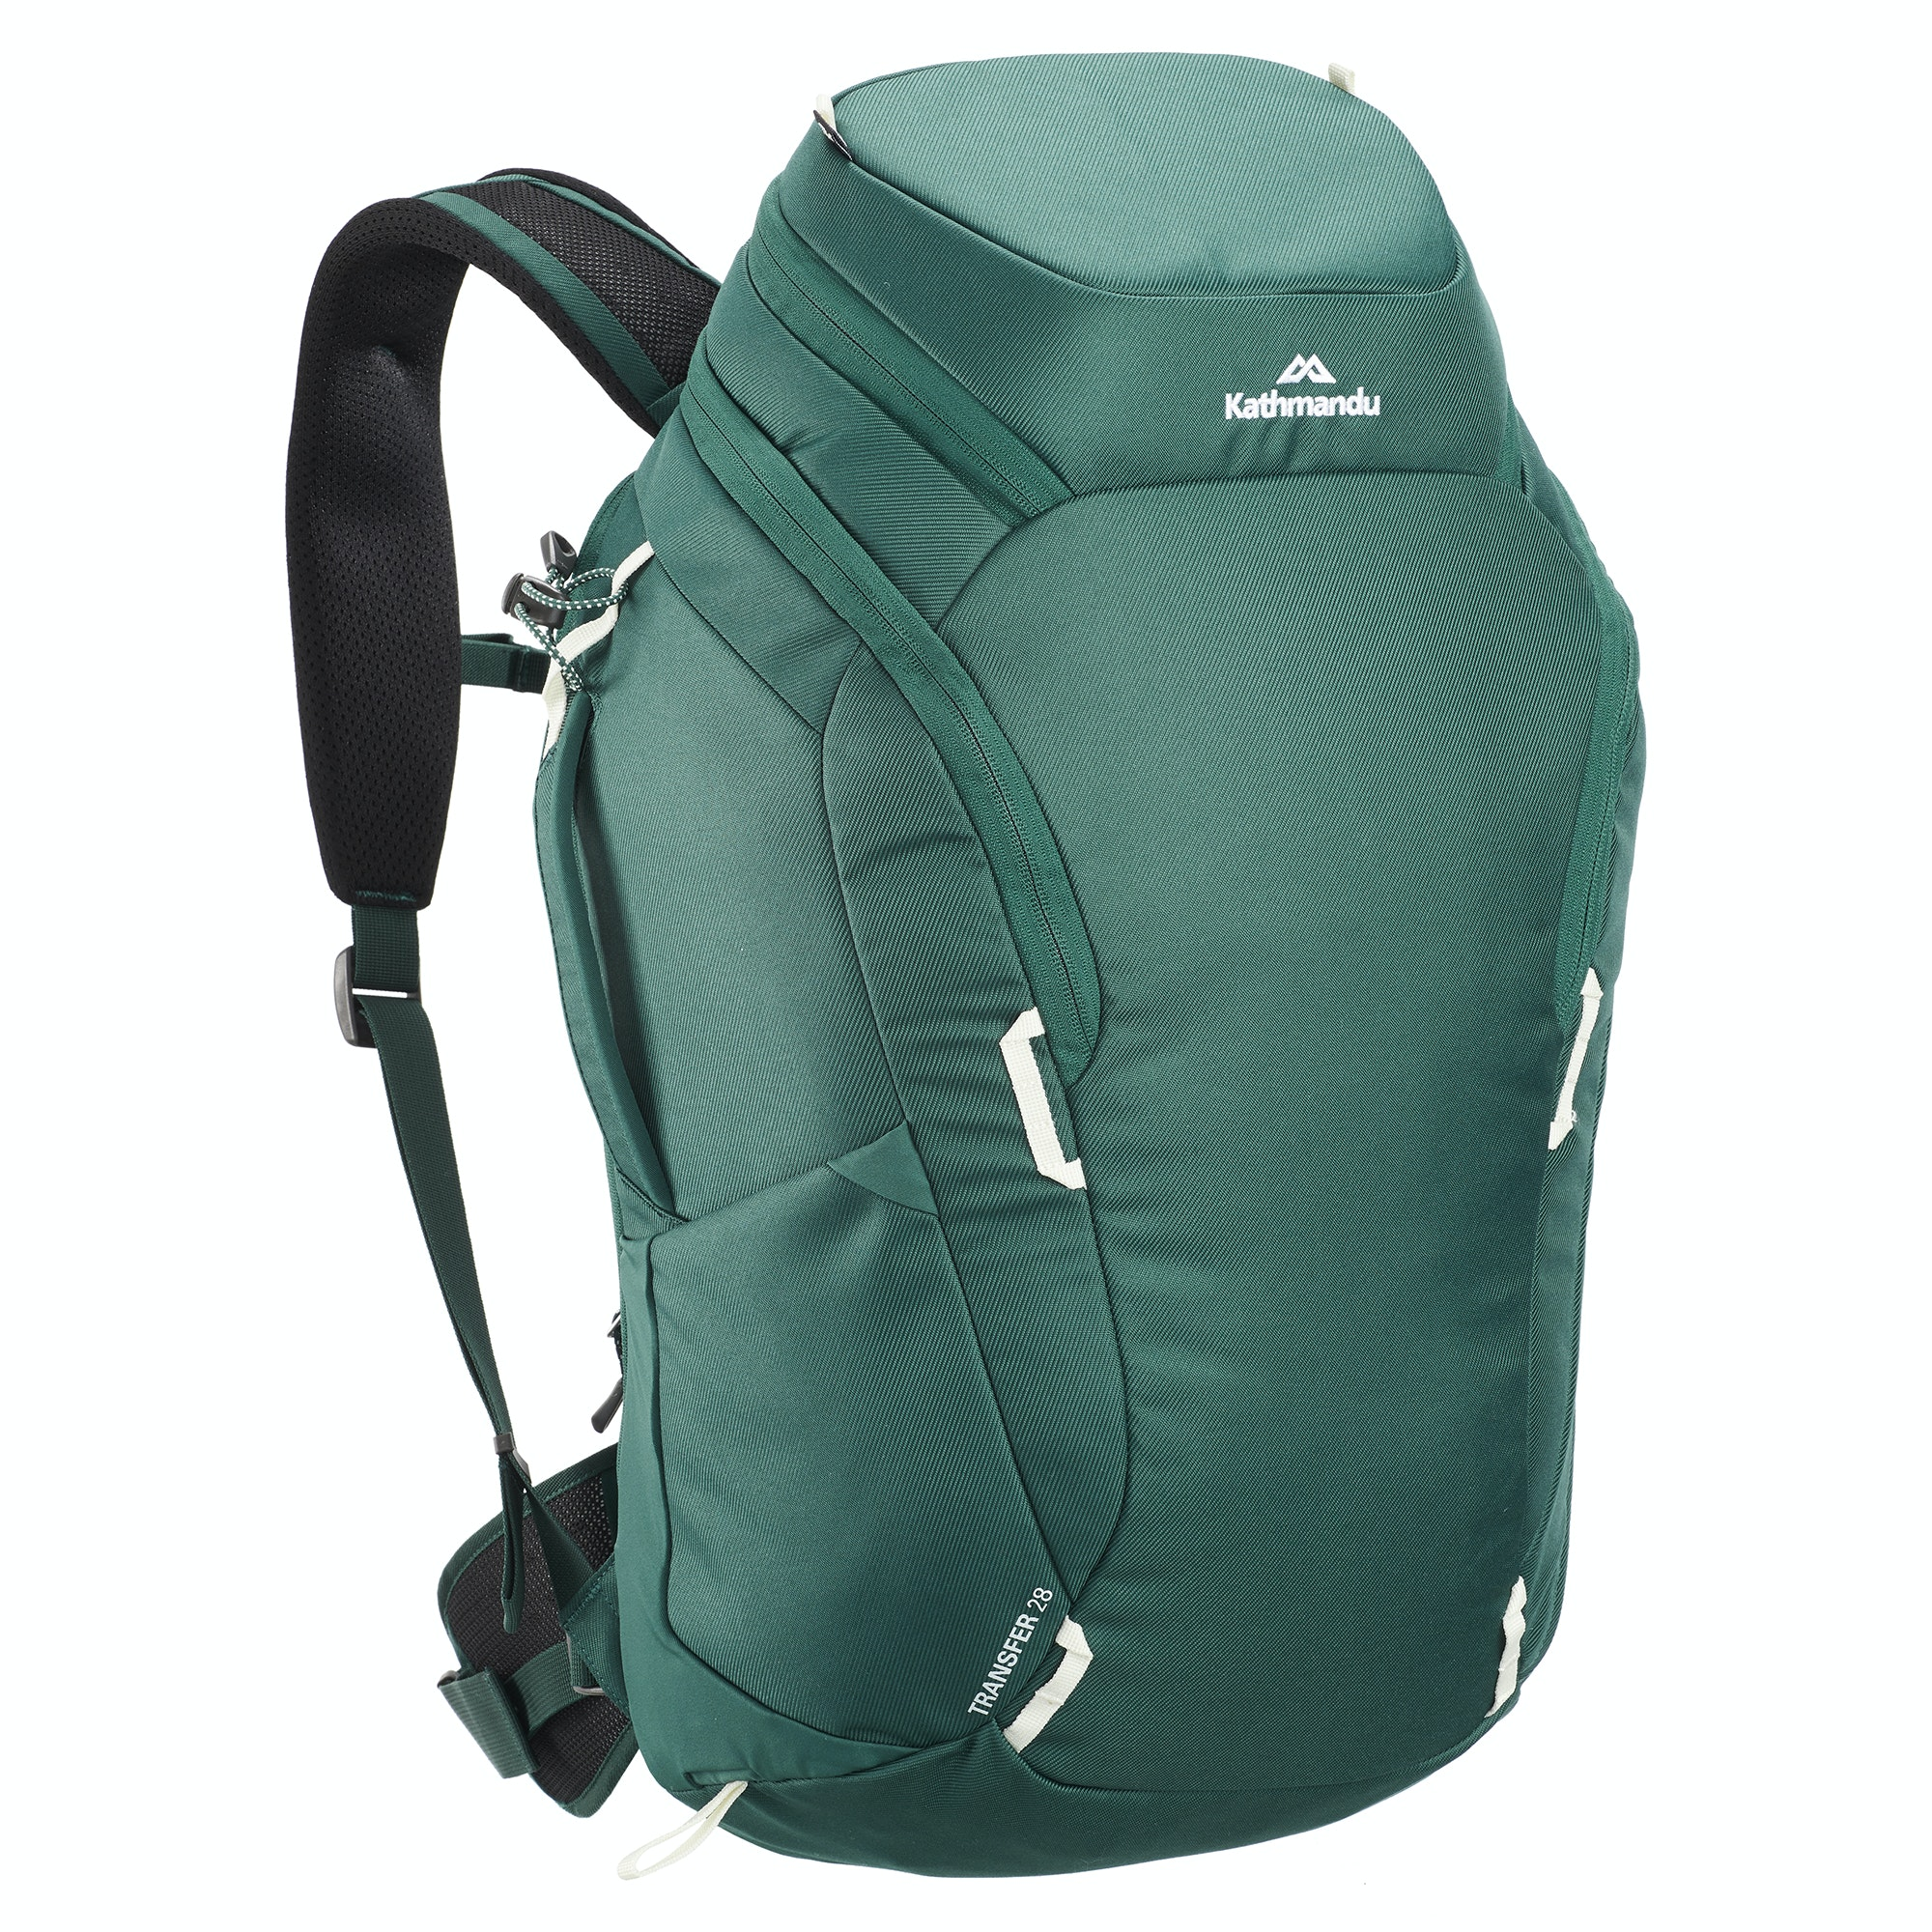 NEW-Kathmandu-Transfer-28L-Commuter-Bag-Laptop-Backpack-Rucksack-Travel-Pack-v3 thumbnail 17